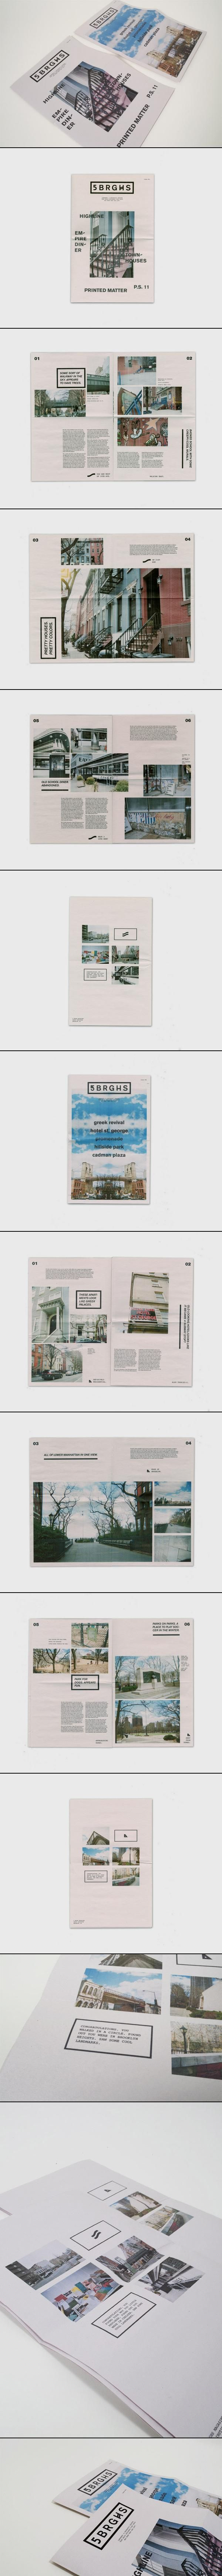 http://www.behance.net/gallery/5-BRGHS-Magazine/7807121 mise en page #editorial